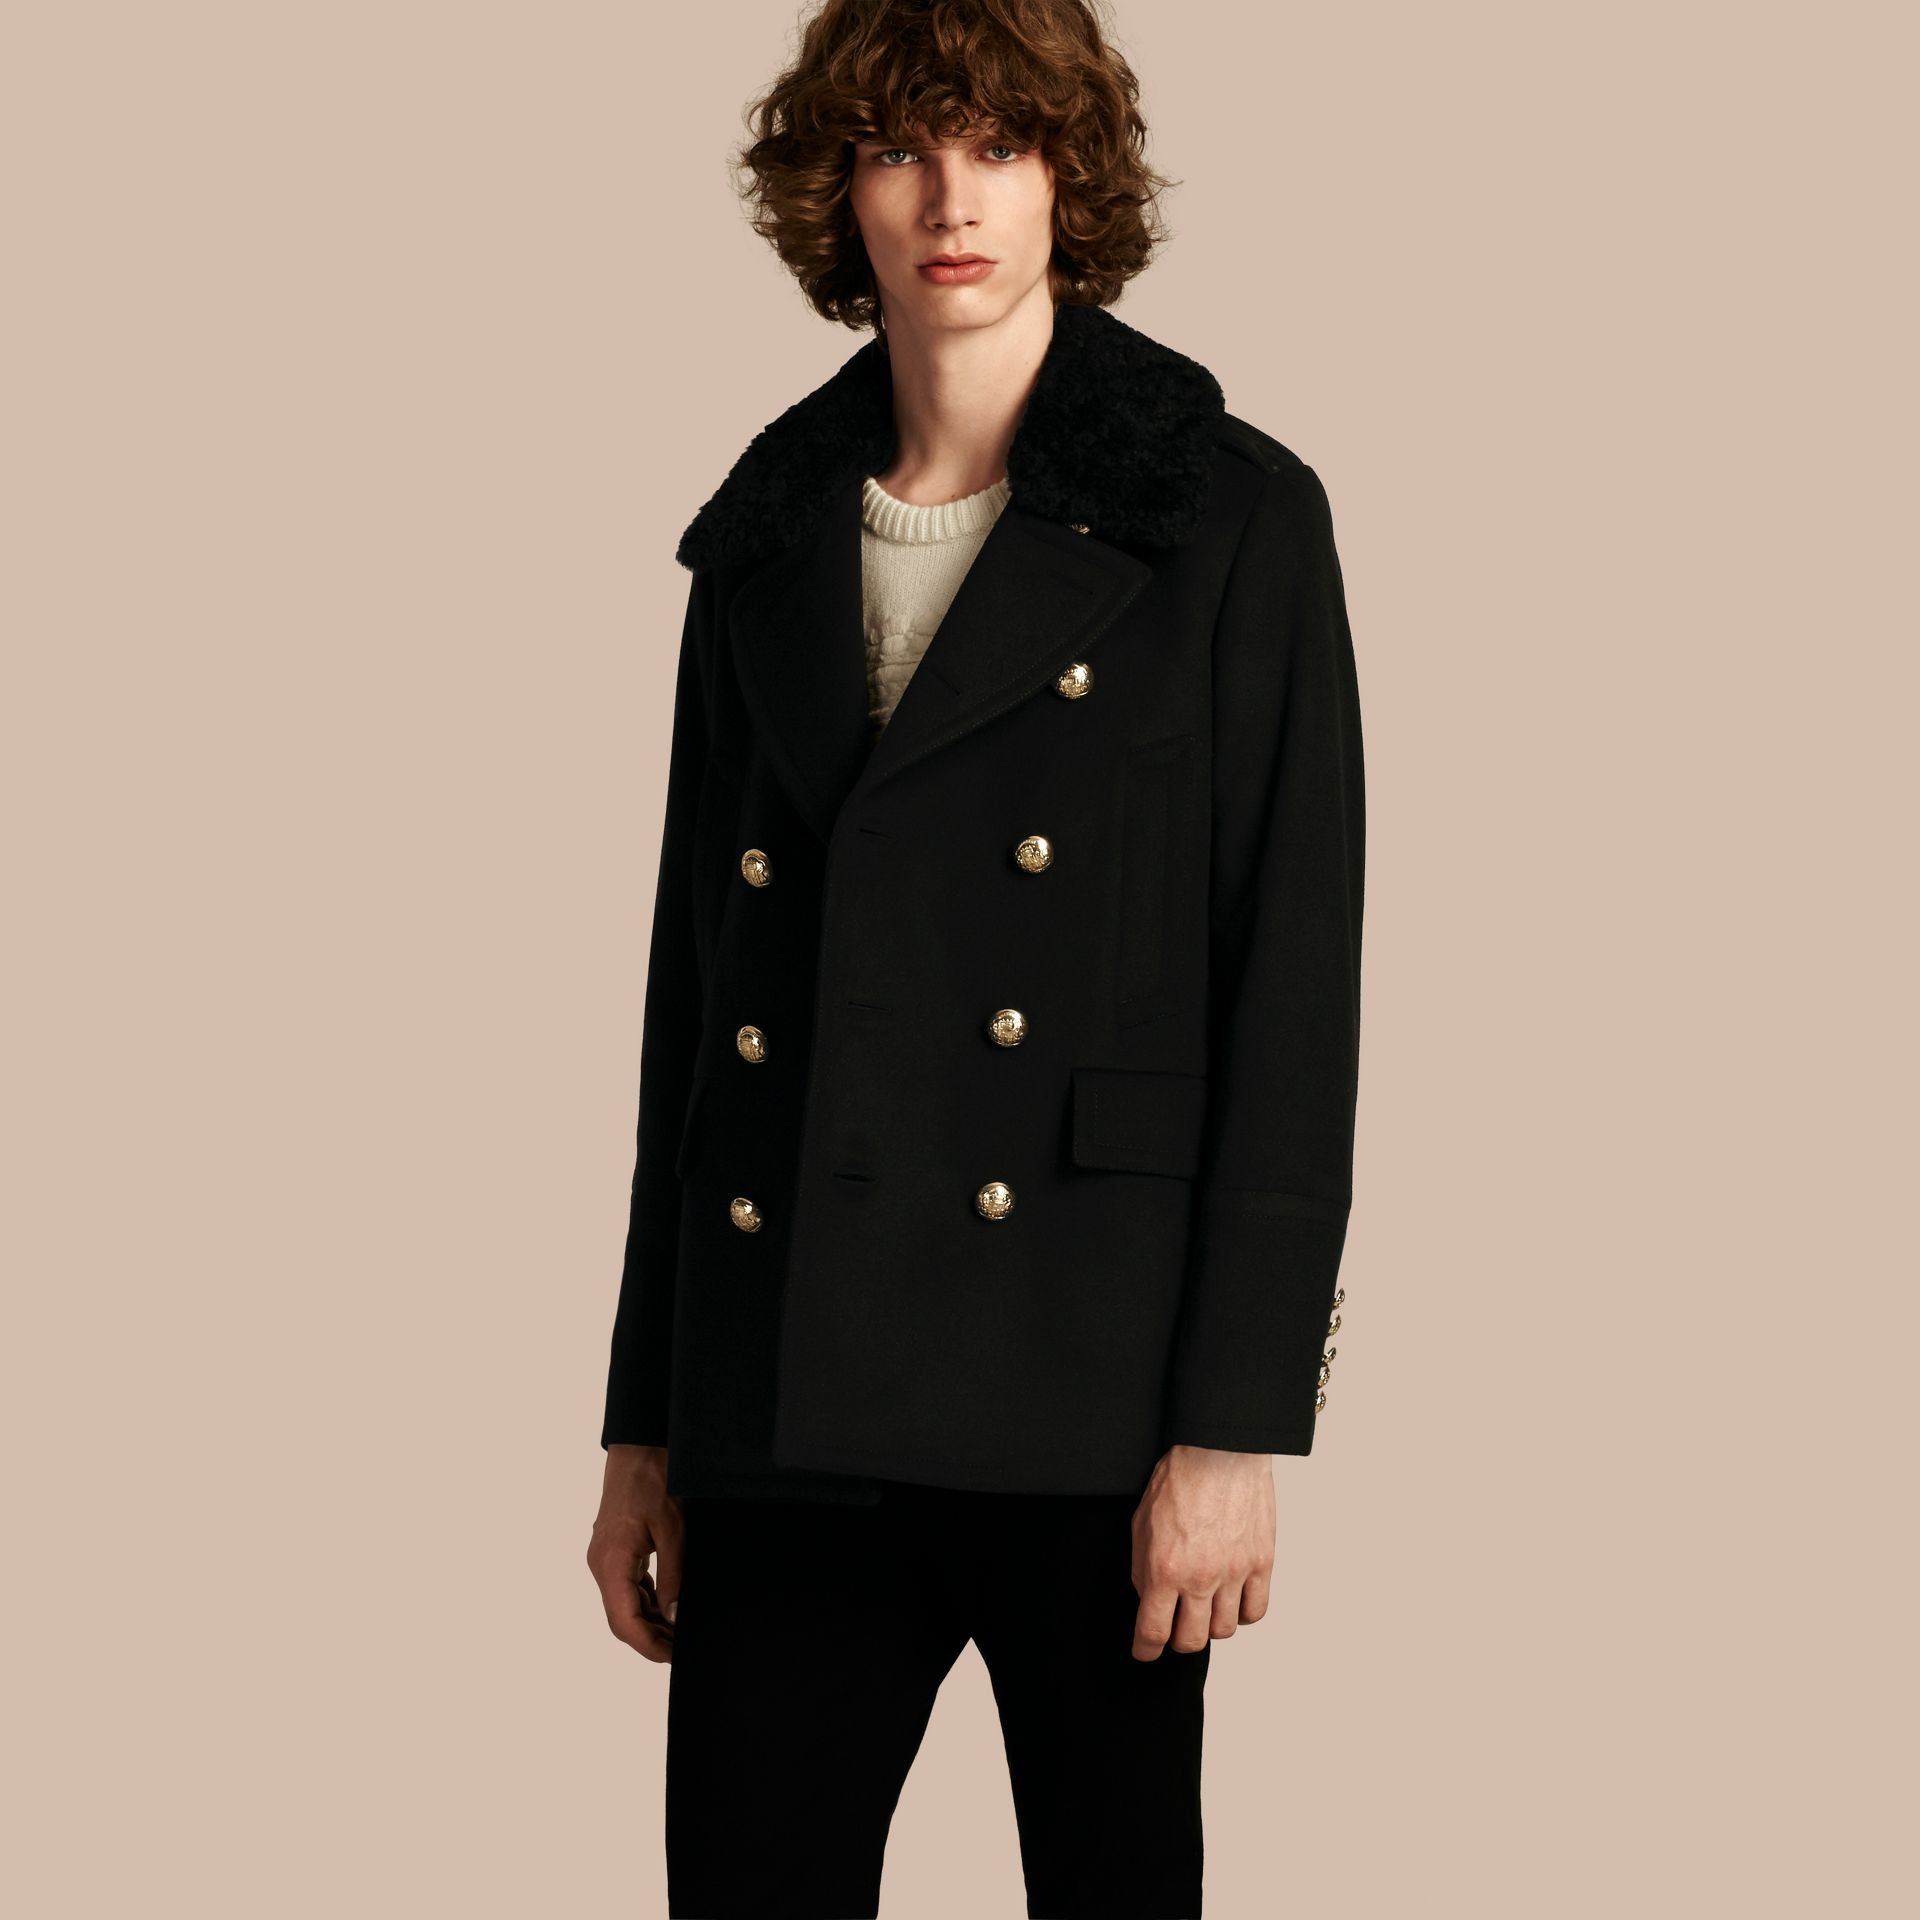 Black Military Pea Coat with Detachable Shearling Collar - gallery image 1